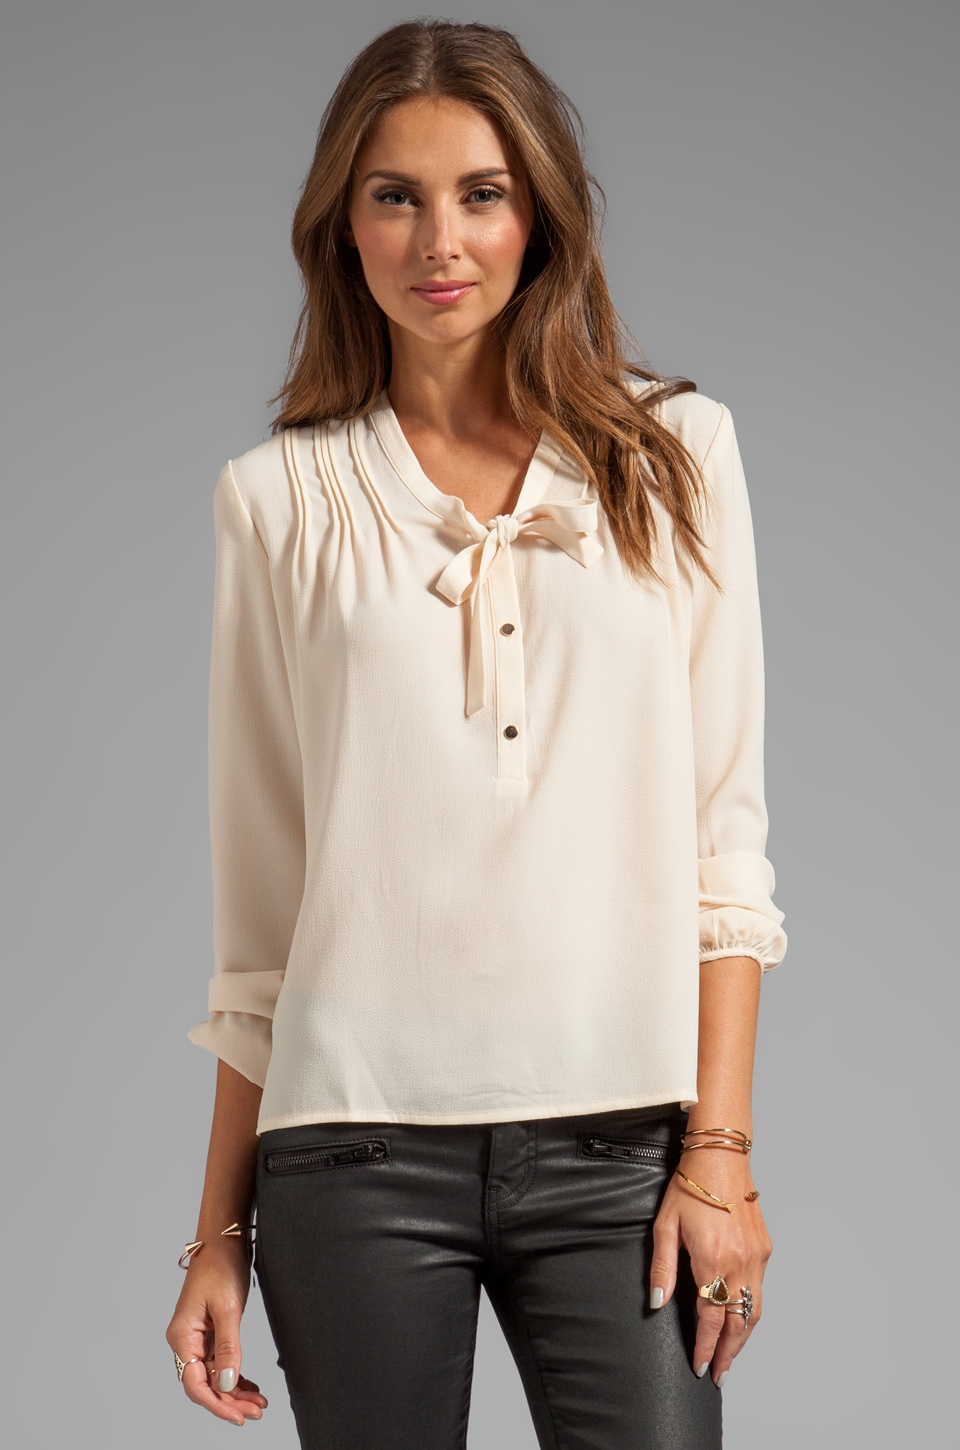 Greylin Emerie Tie Blouse in Ivory